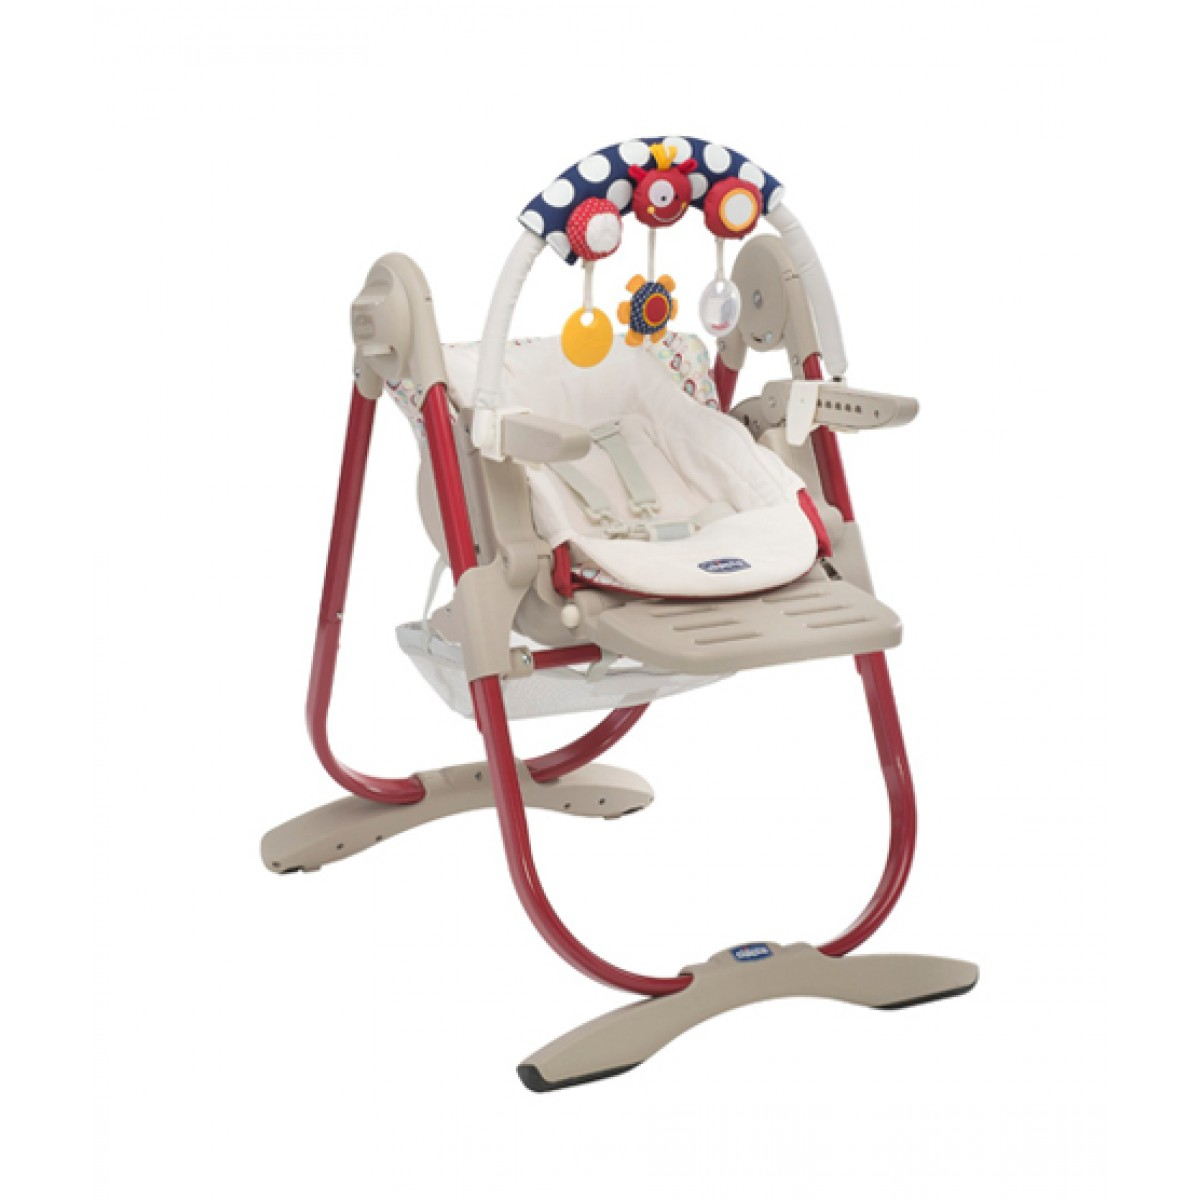 Chicco Polly High Chair Pois Price In Pakistan Buy Chicco Polly